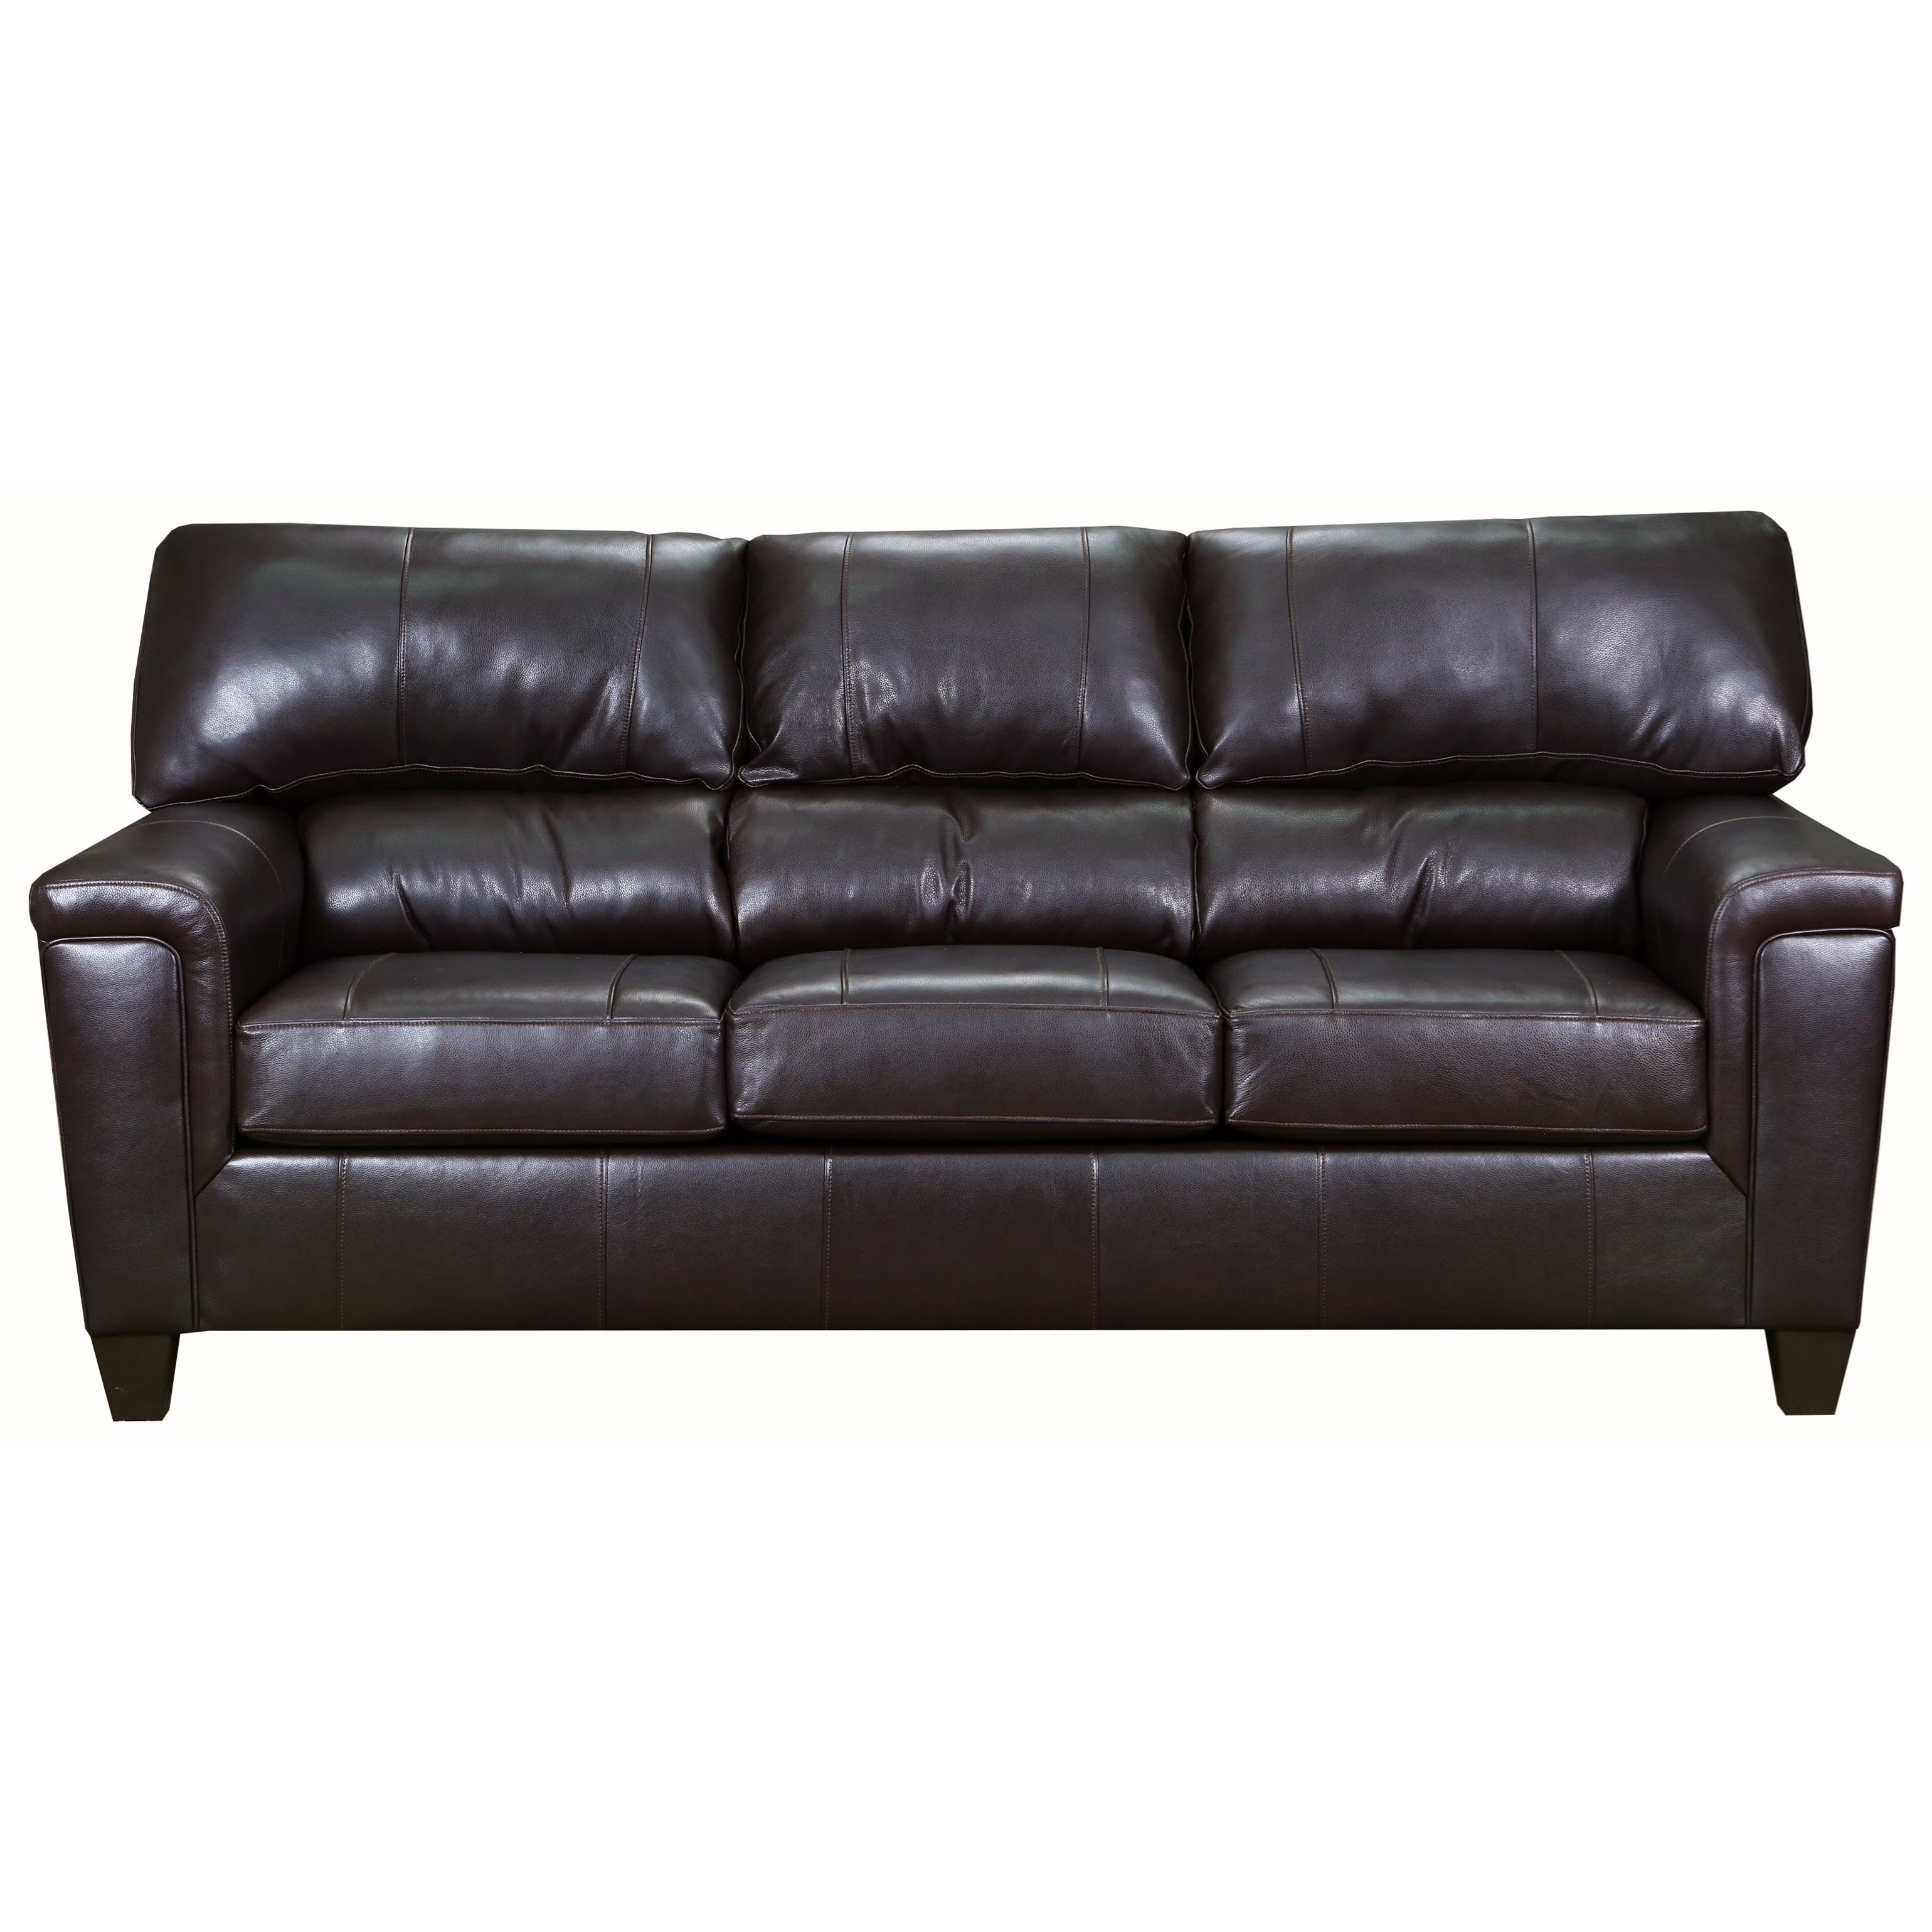 2038 Sofa Sleeper by Lane at Powell's Furniture and Mattress